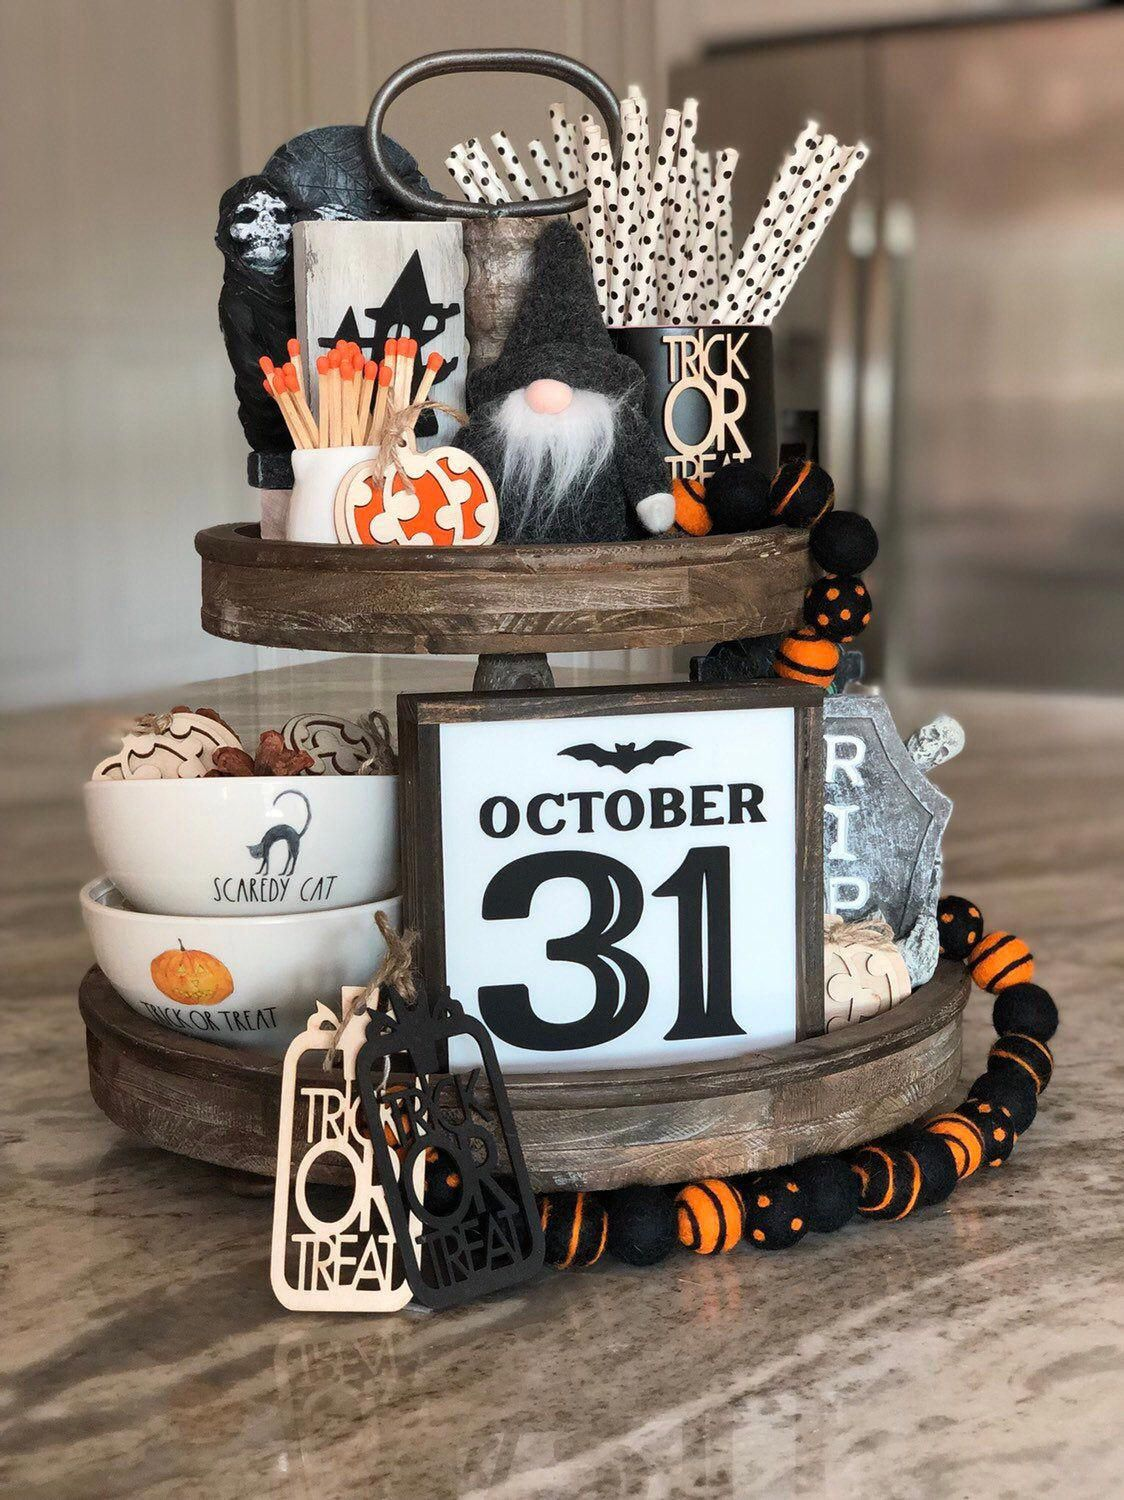 halloweenhomedecor in 2020 Rustic halloween, Rustic